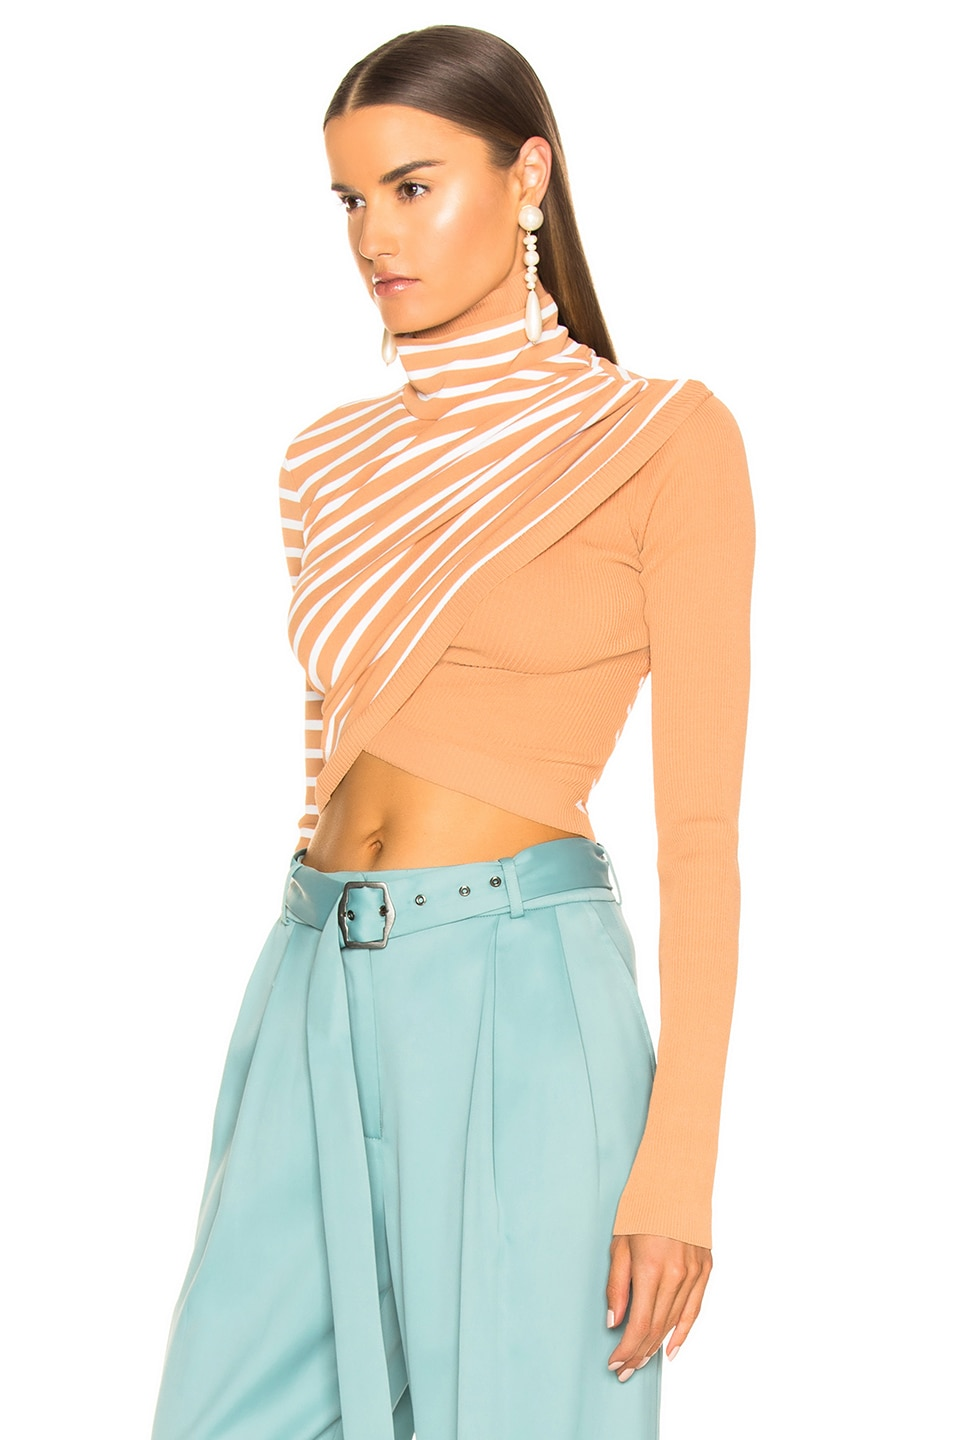 Image 3 of Sies Marjan Jenn Wrap Crop Turtleneck Sweater in Cinnamon & Salt Stripe